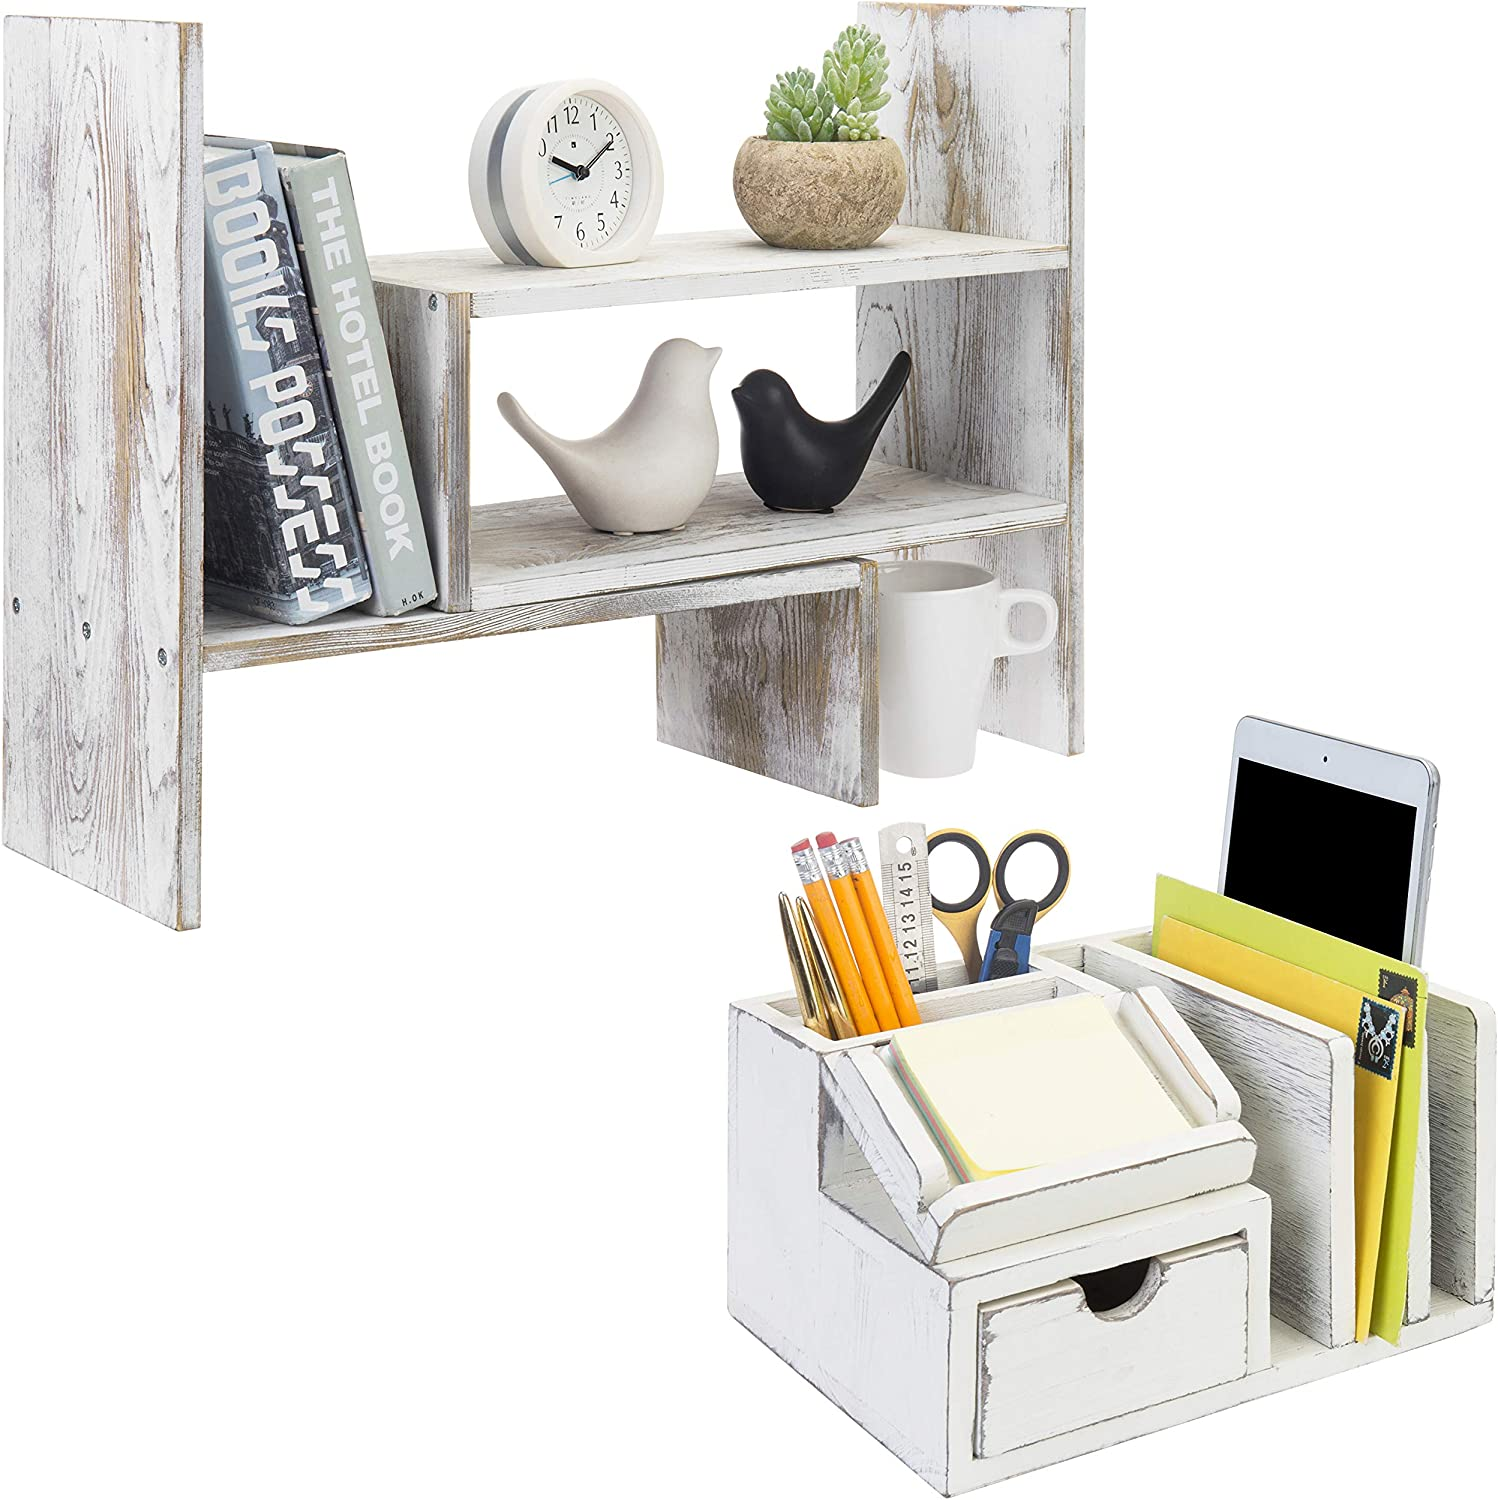 Amazon Com Whitewashed Wood Adjustable Desktop Office Organizer Bundle With Vintage White Wood Sticky Note Pad Holder Mail Sorter Office Products